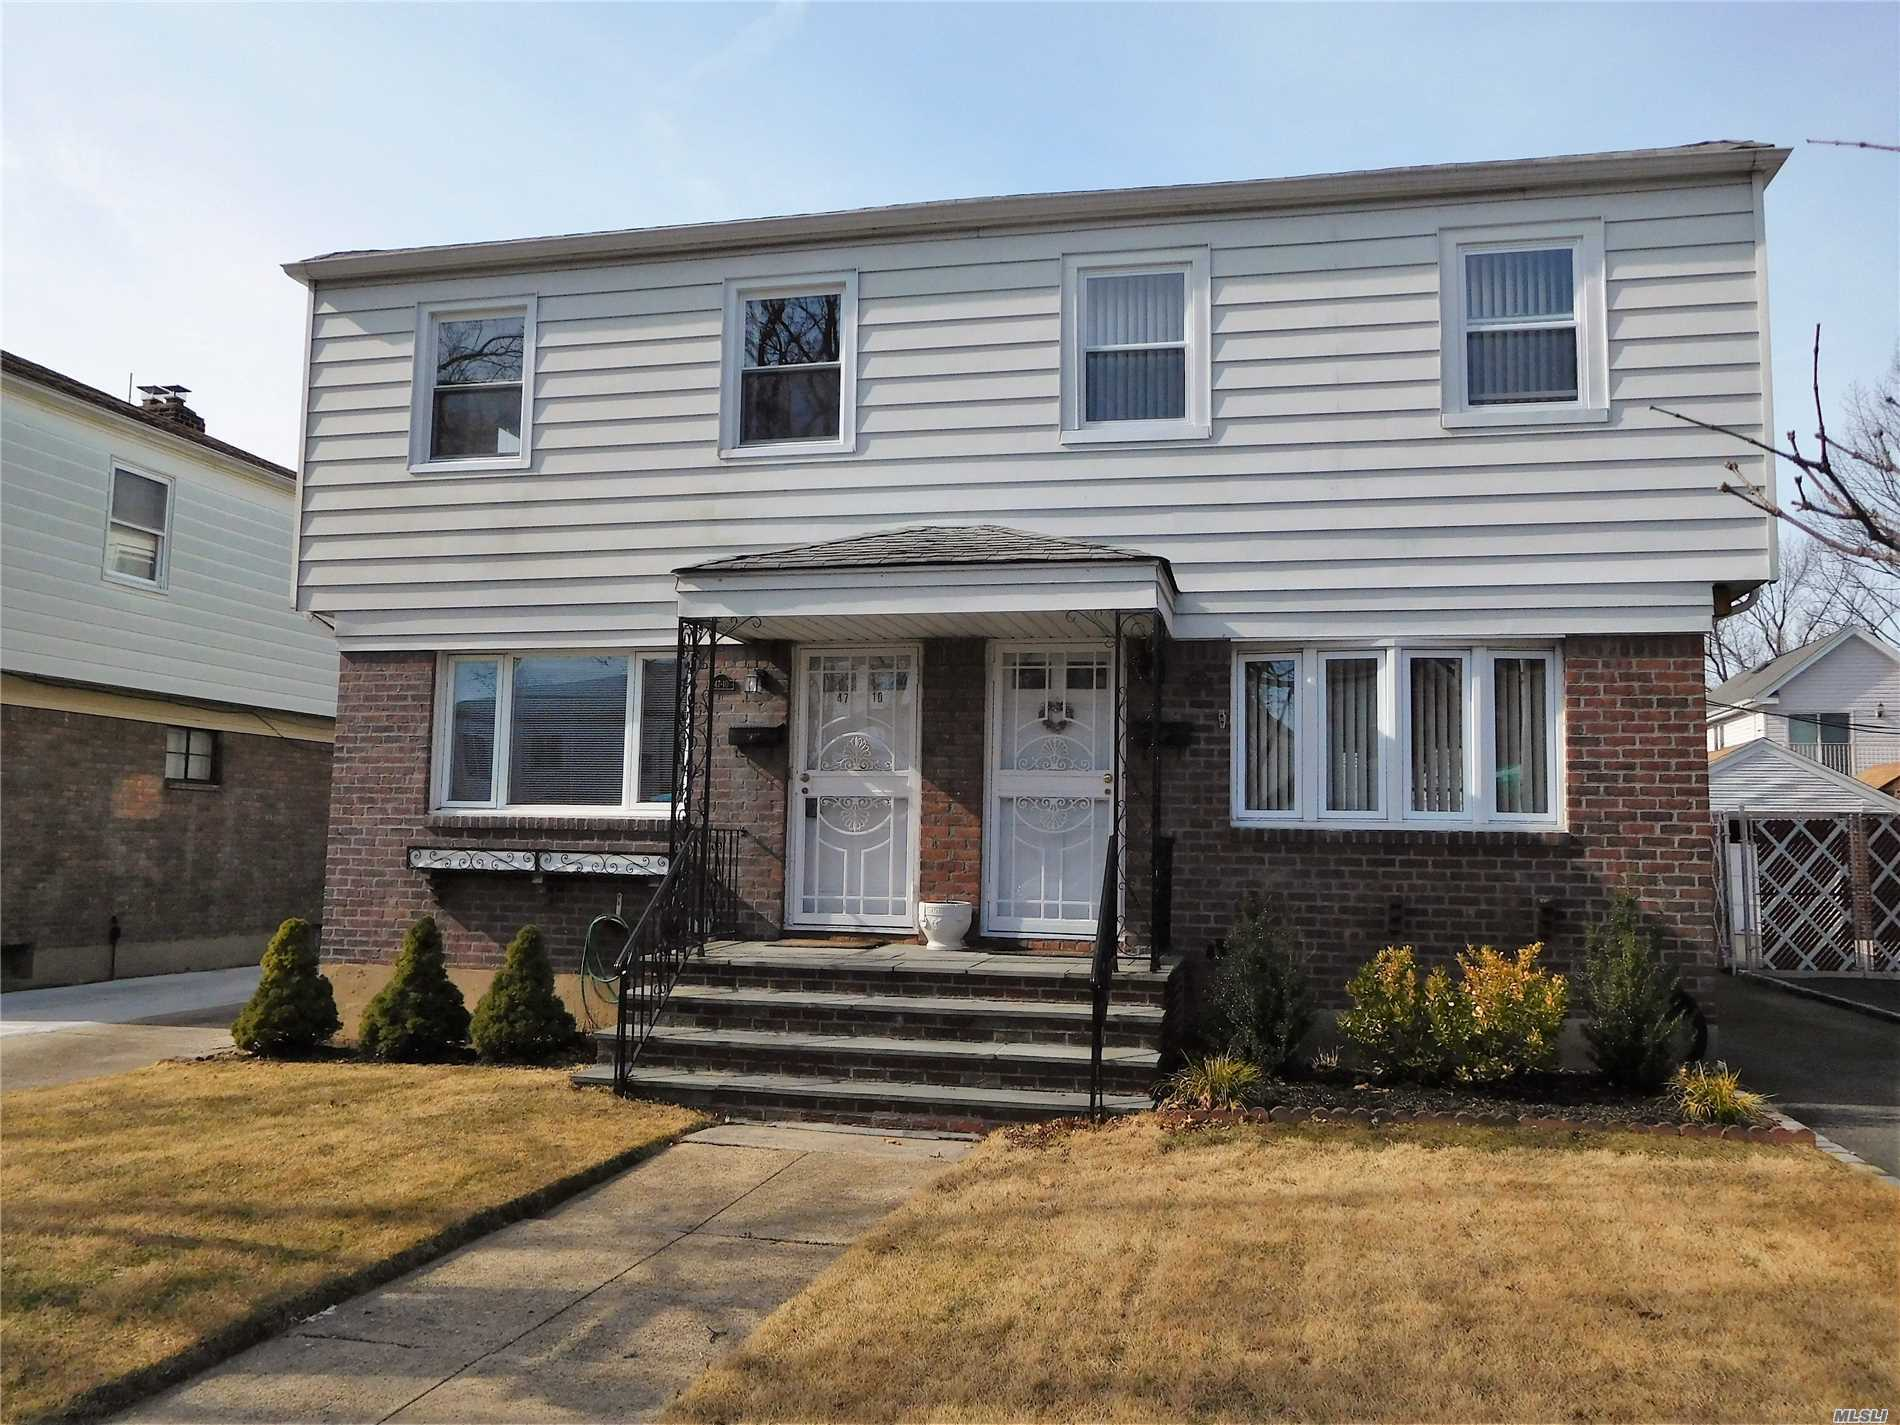 Conveniently Located. Brick And Vinyl Siding, Semi Attached 3 Bedroom Colonial. New Heating System, Central Air, Fenced Yard With Retractable Awning And An Oversized Garage With Ee. Pretty Tree Lined Street.